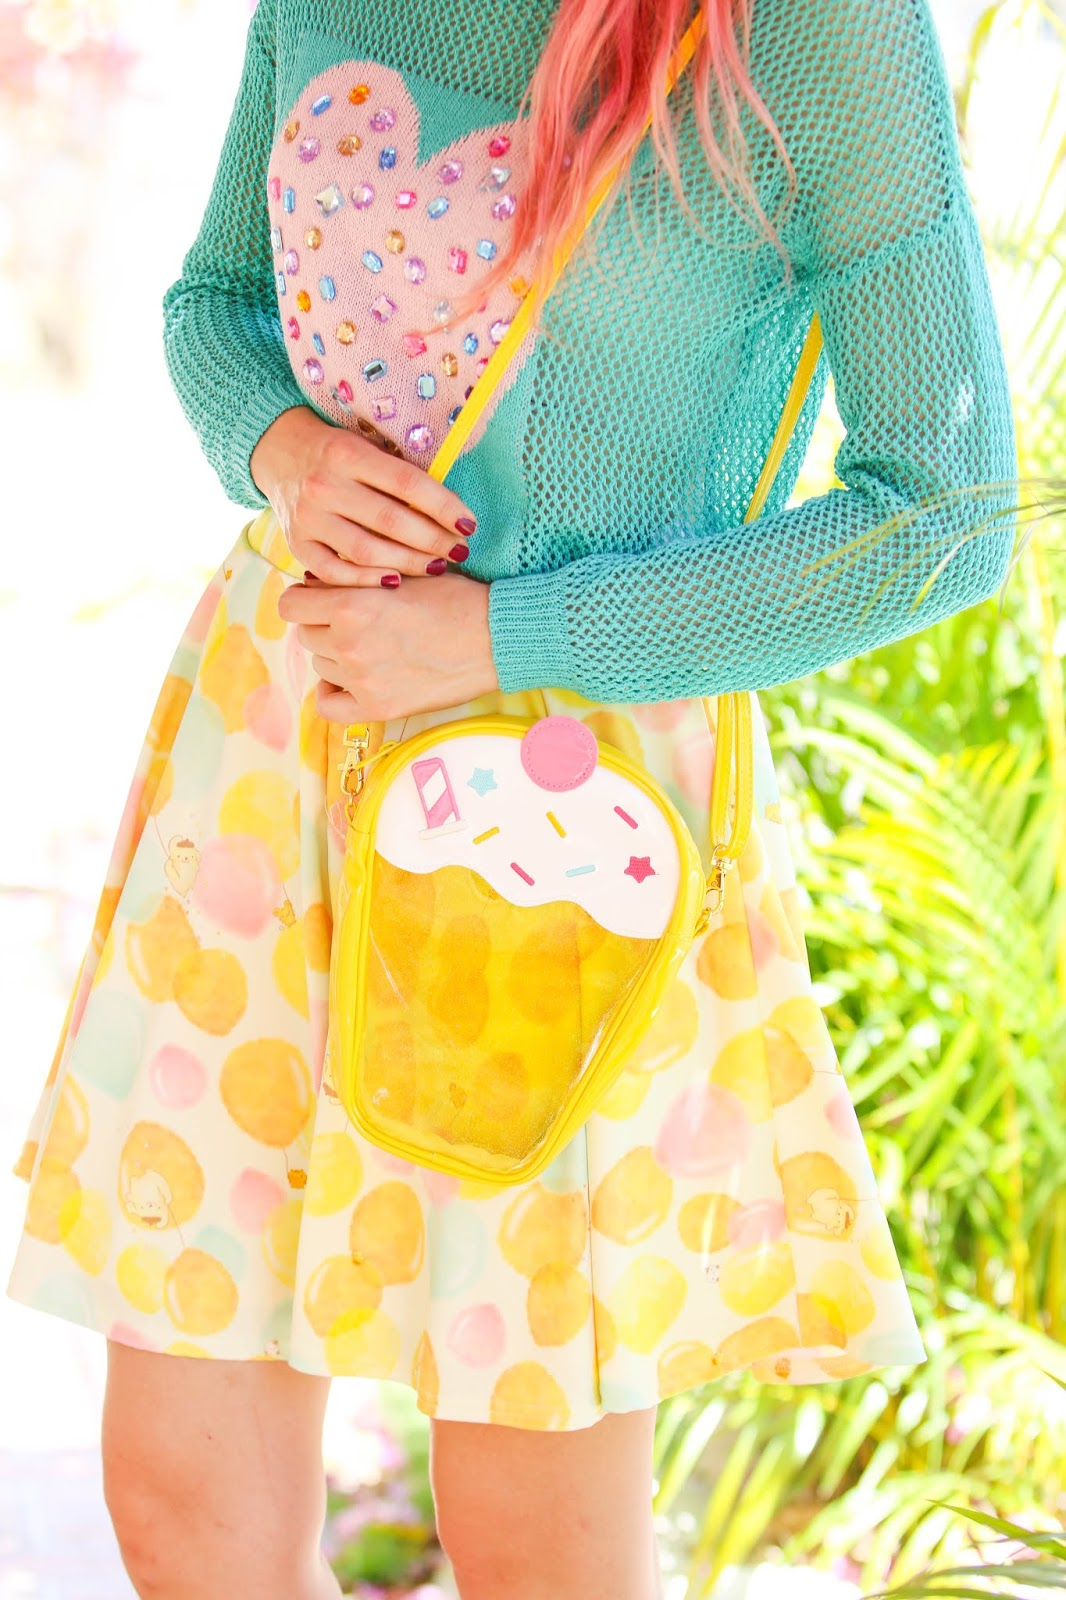 Adorable food purse from Japan